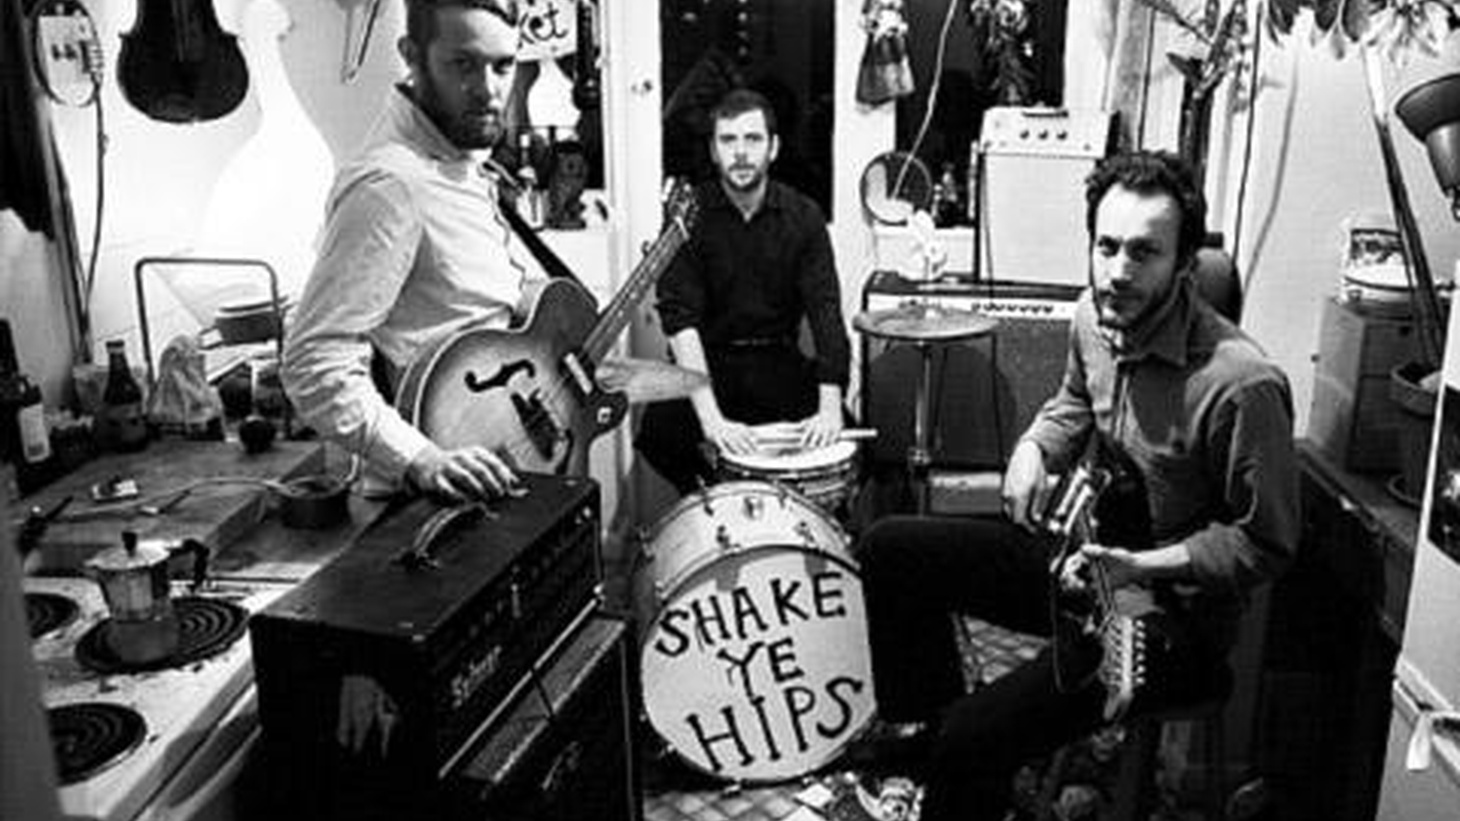 """London art-rock trio Archie Bronson Outfit create dirty psychedelic garage rock that shies away from the mainstream. While their 3rd release, Coconut, is their most accessible yet, they still push the boundaries just a little bit. Today's Top Tune is """"Shark's Tooth."""""""